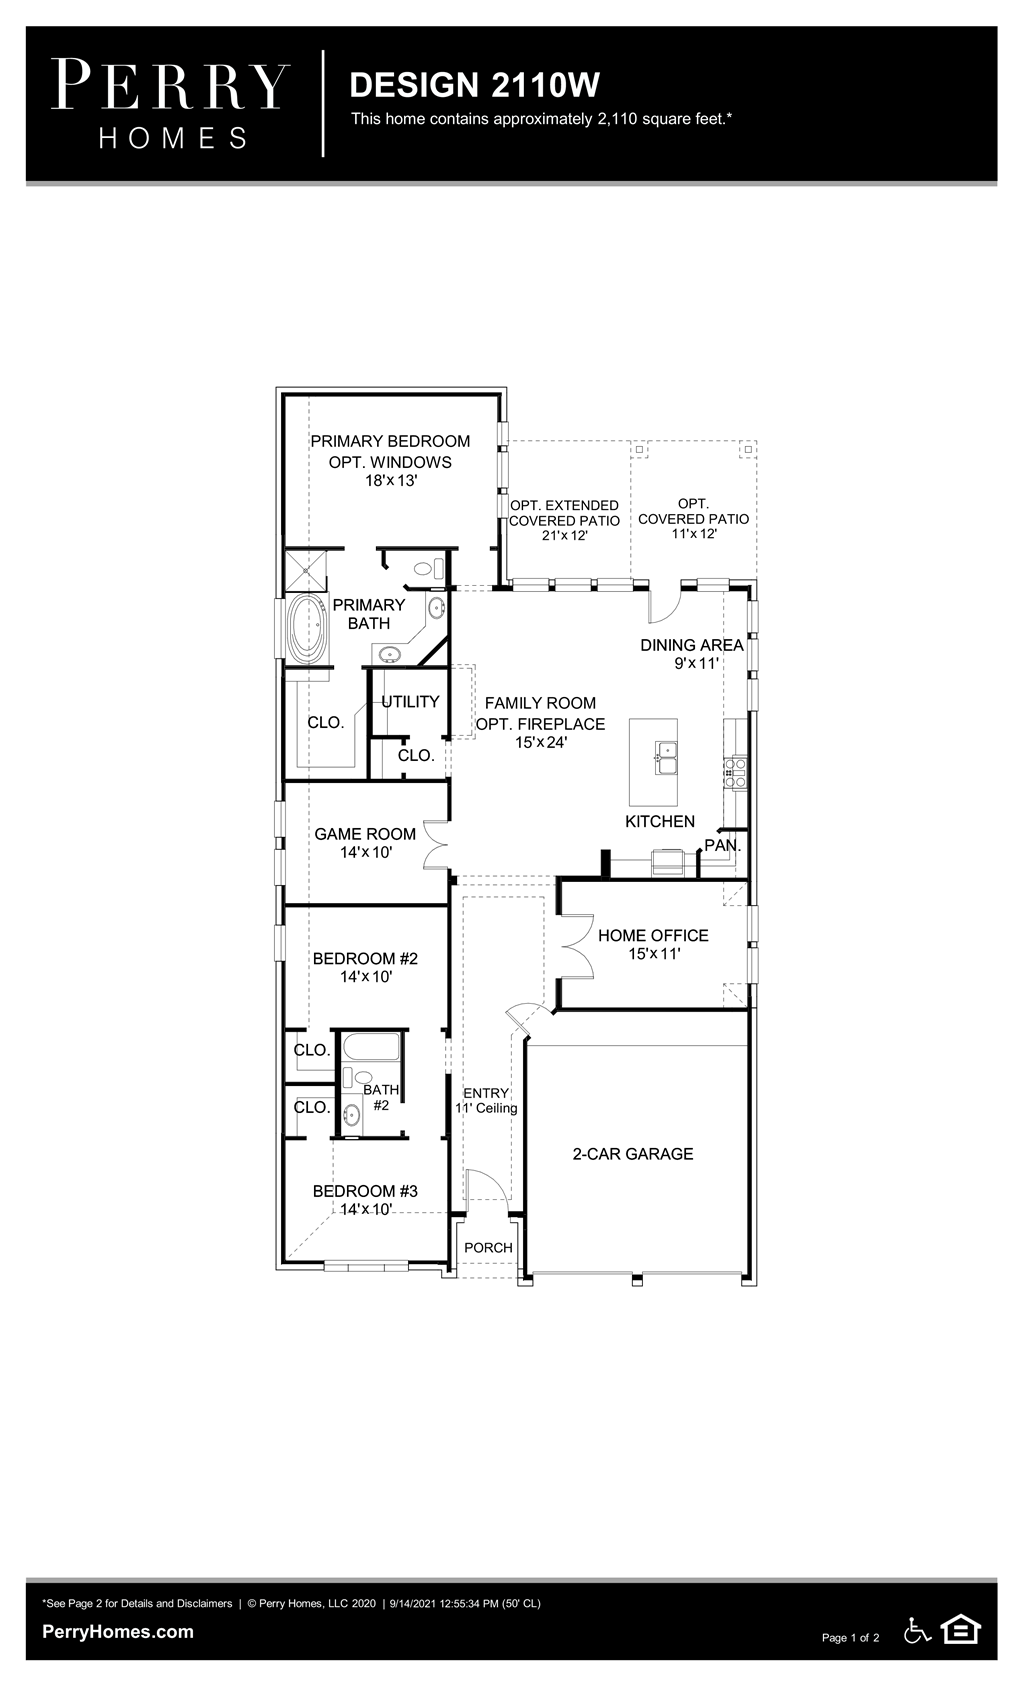 Floor Plan for 2110W